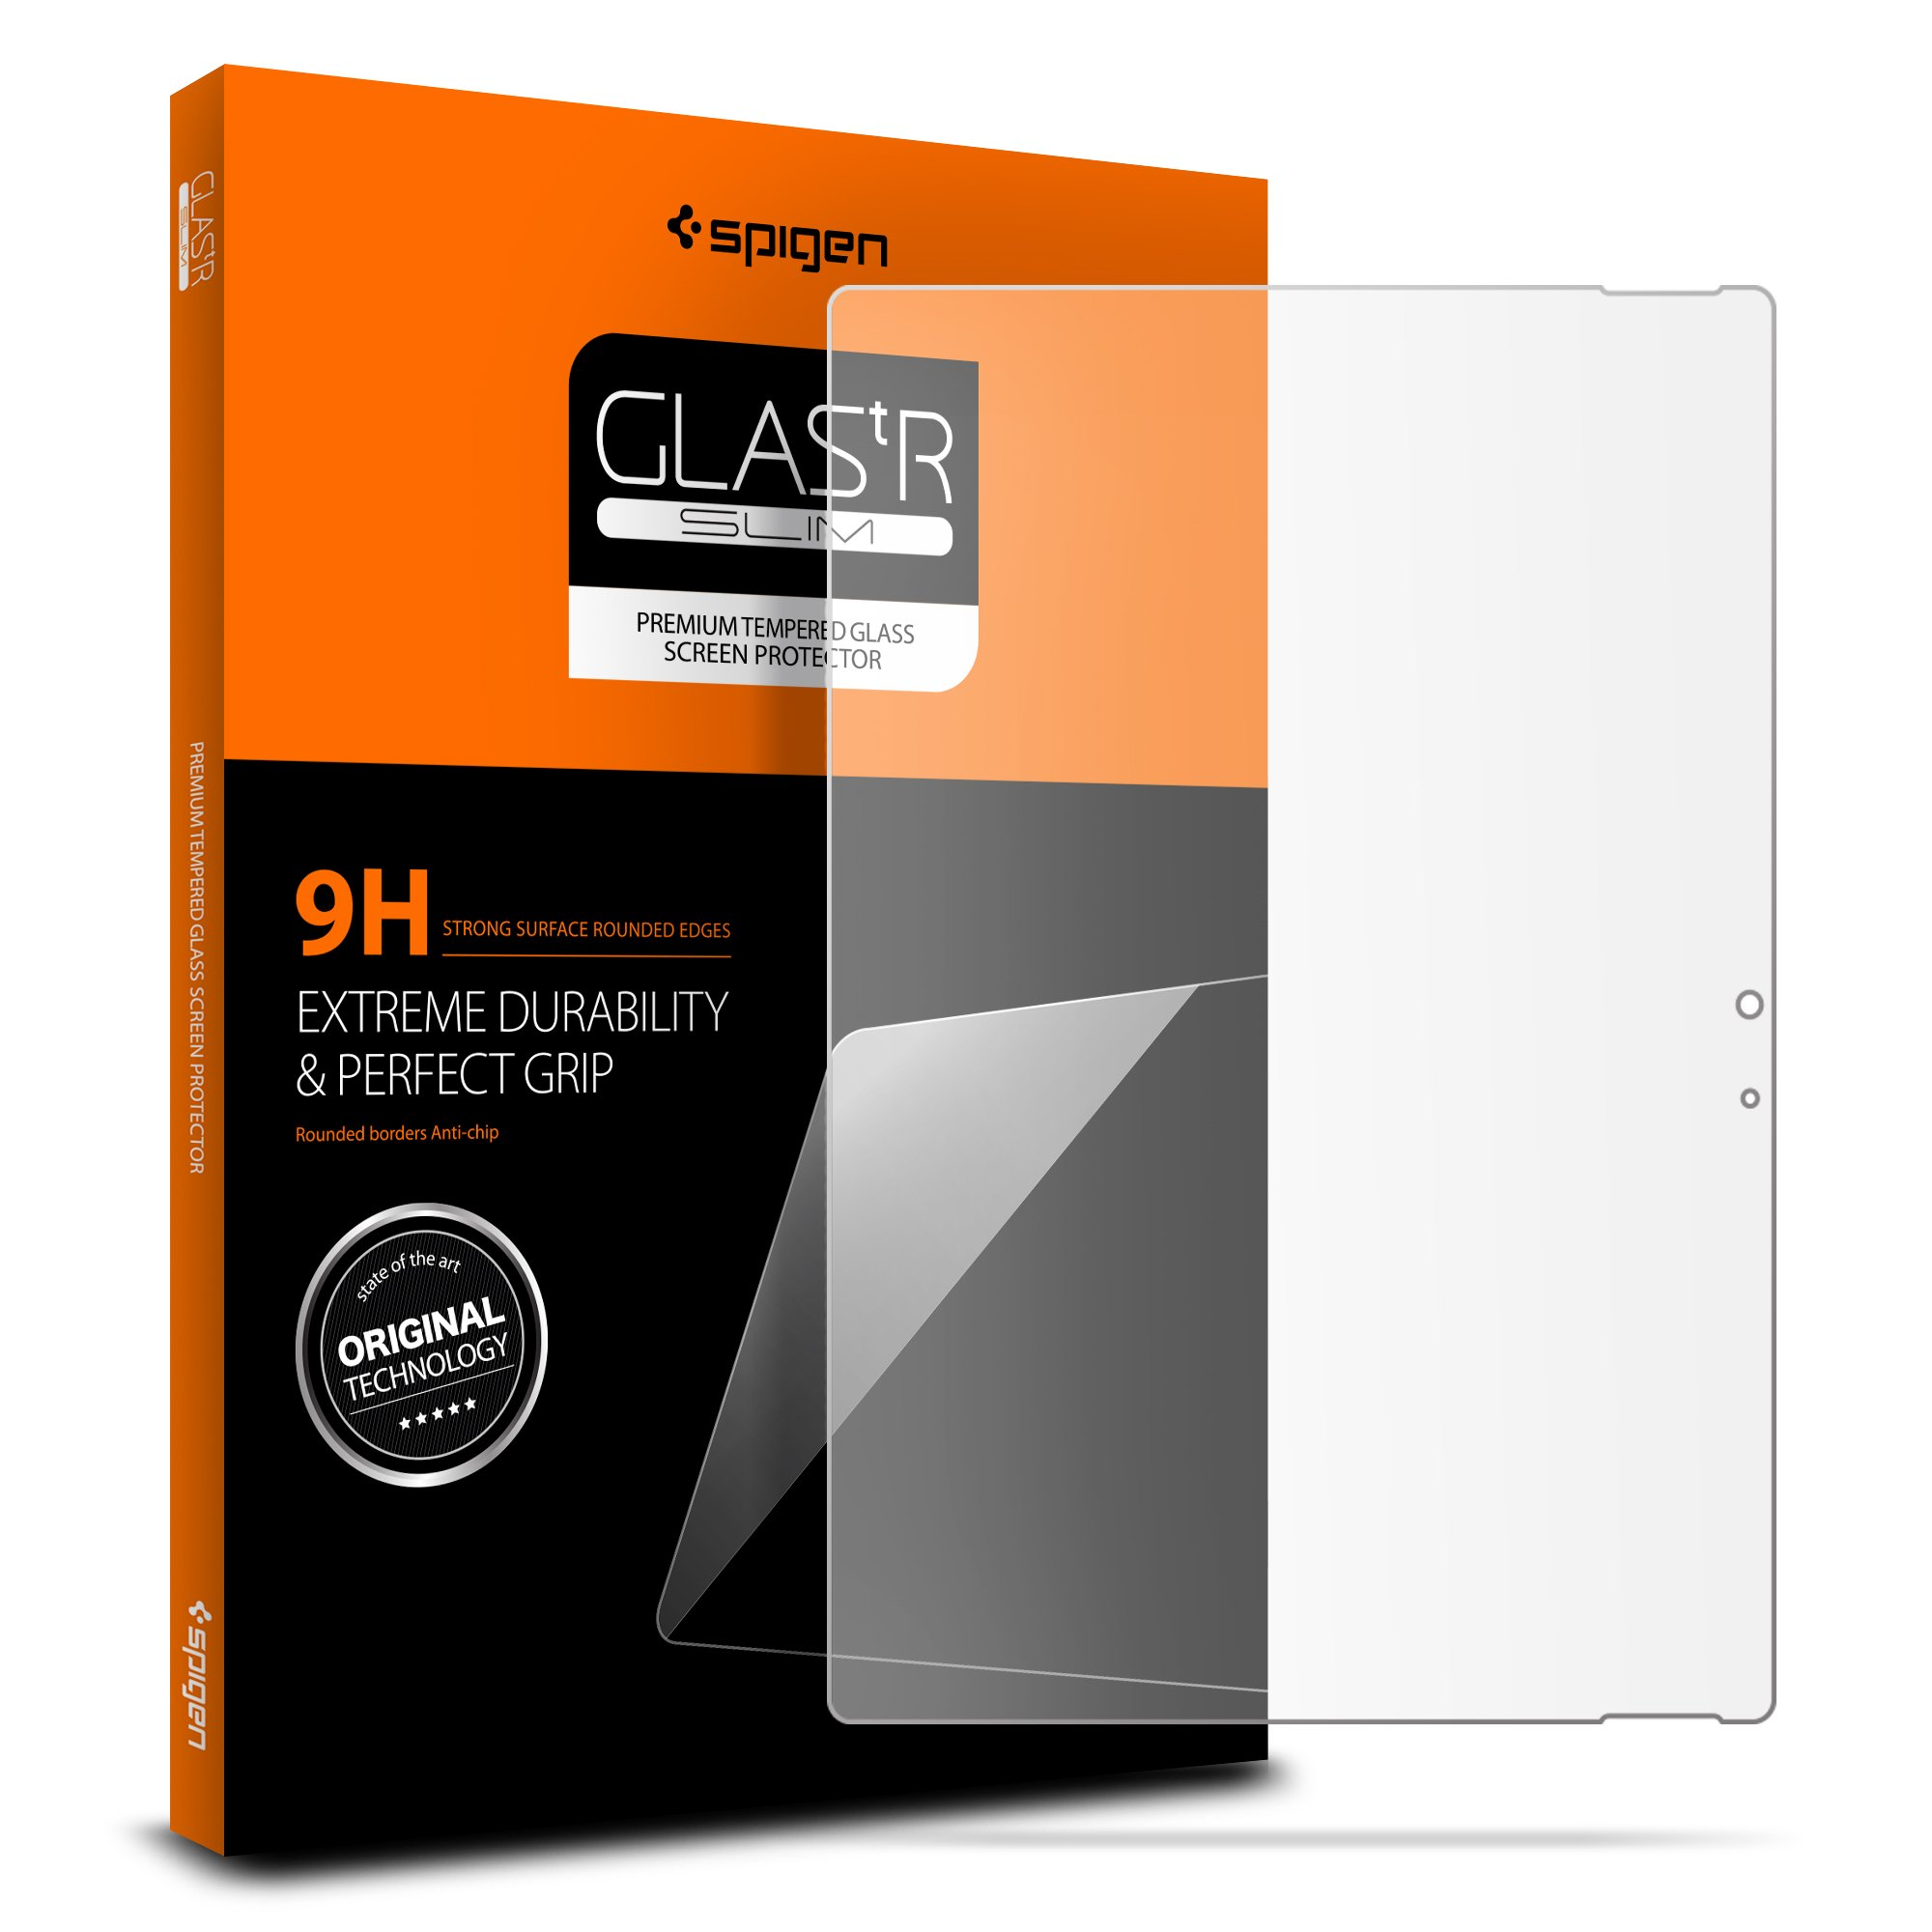 Spigen Screen Protector [ Tempered Glass ] for Surface Book 2 (13.5 inch) / Surface Book (13.5 inch)